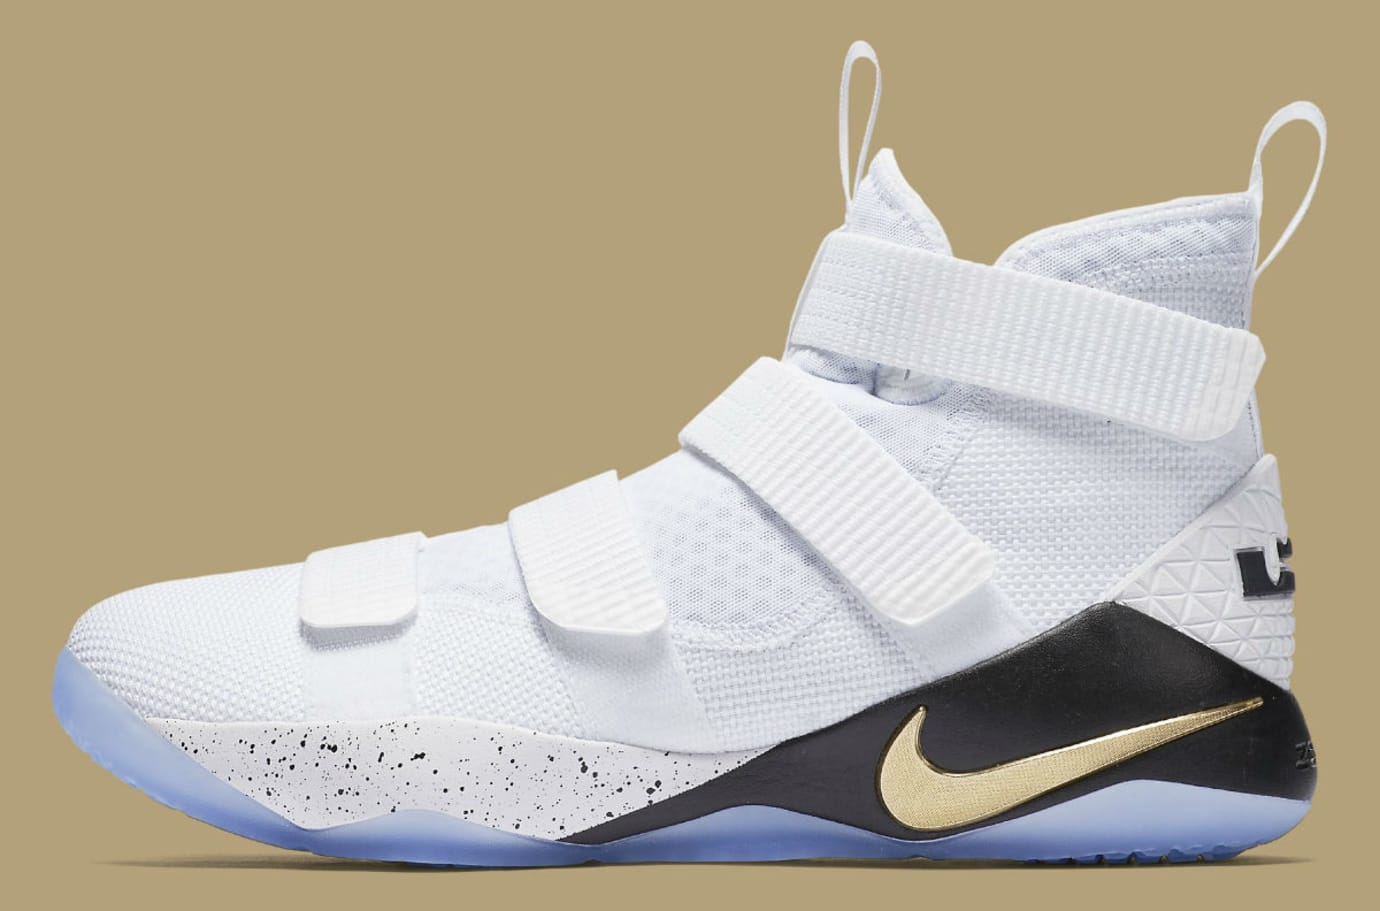 eaaff5d00870 Nike LeBron Soldier 11 White Gold Black Release Date Profile 897644-101